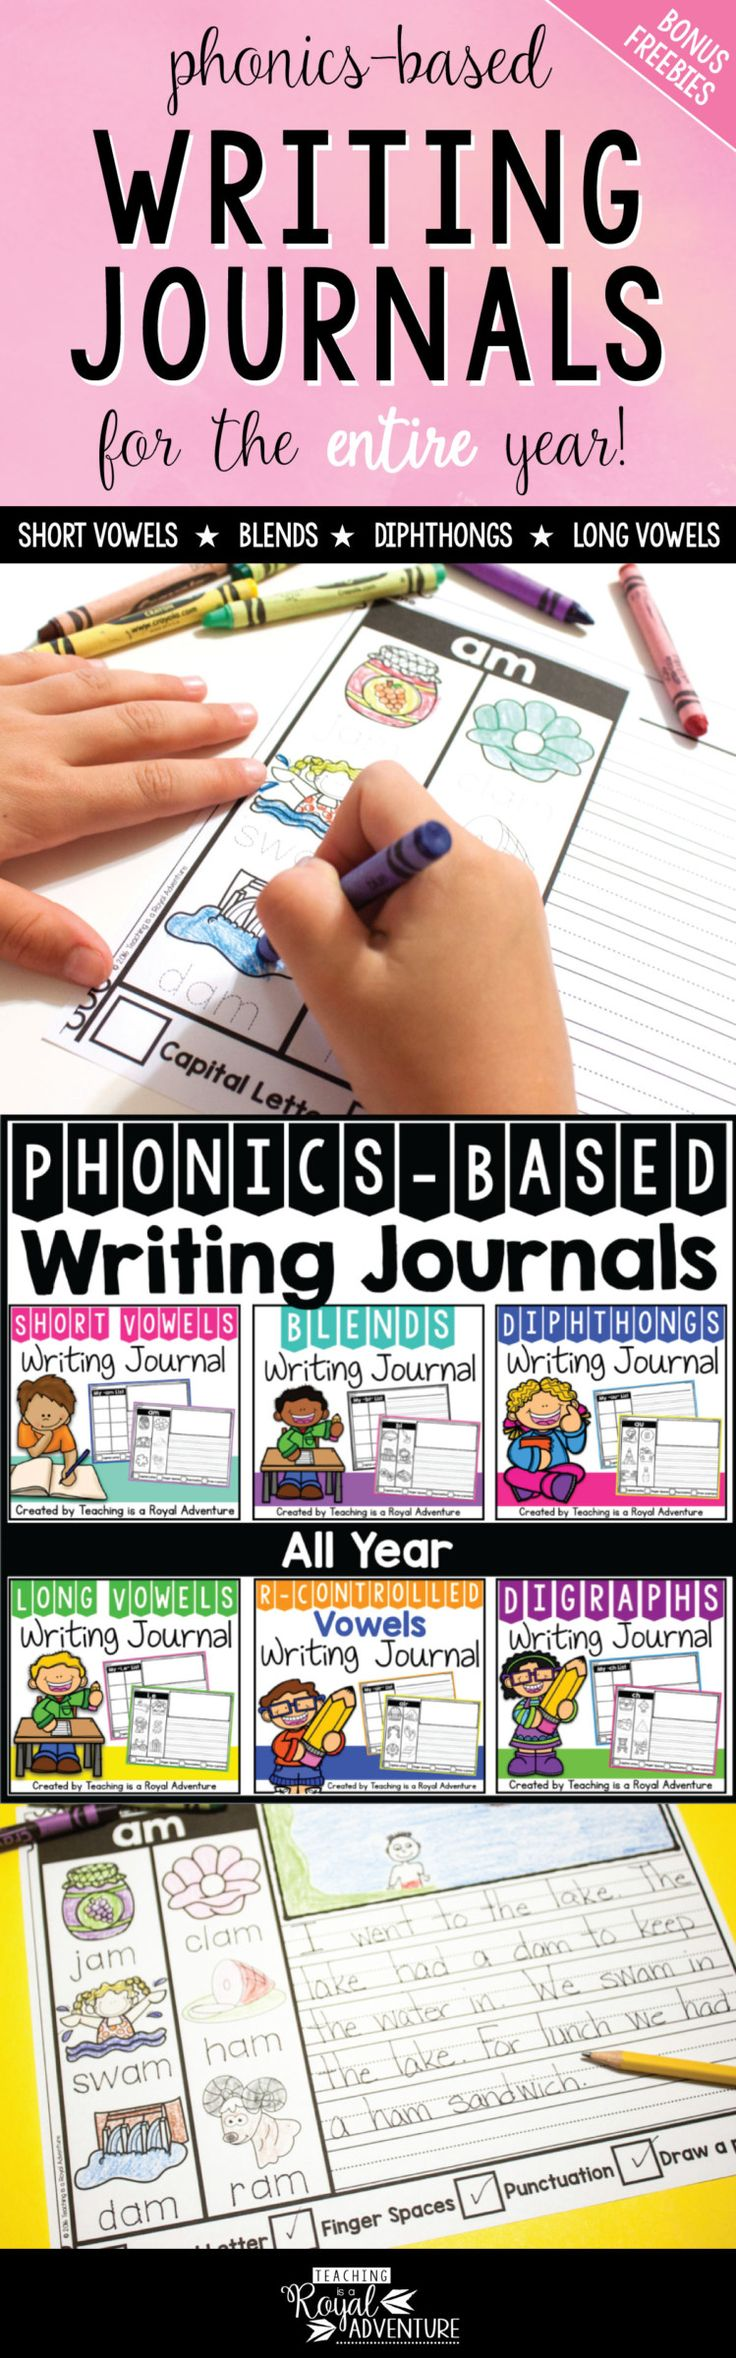 research on reading and phonics based instruction